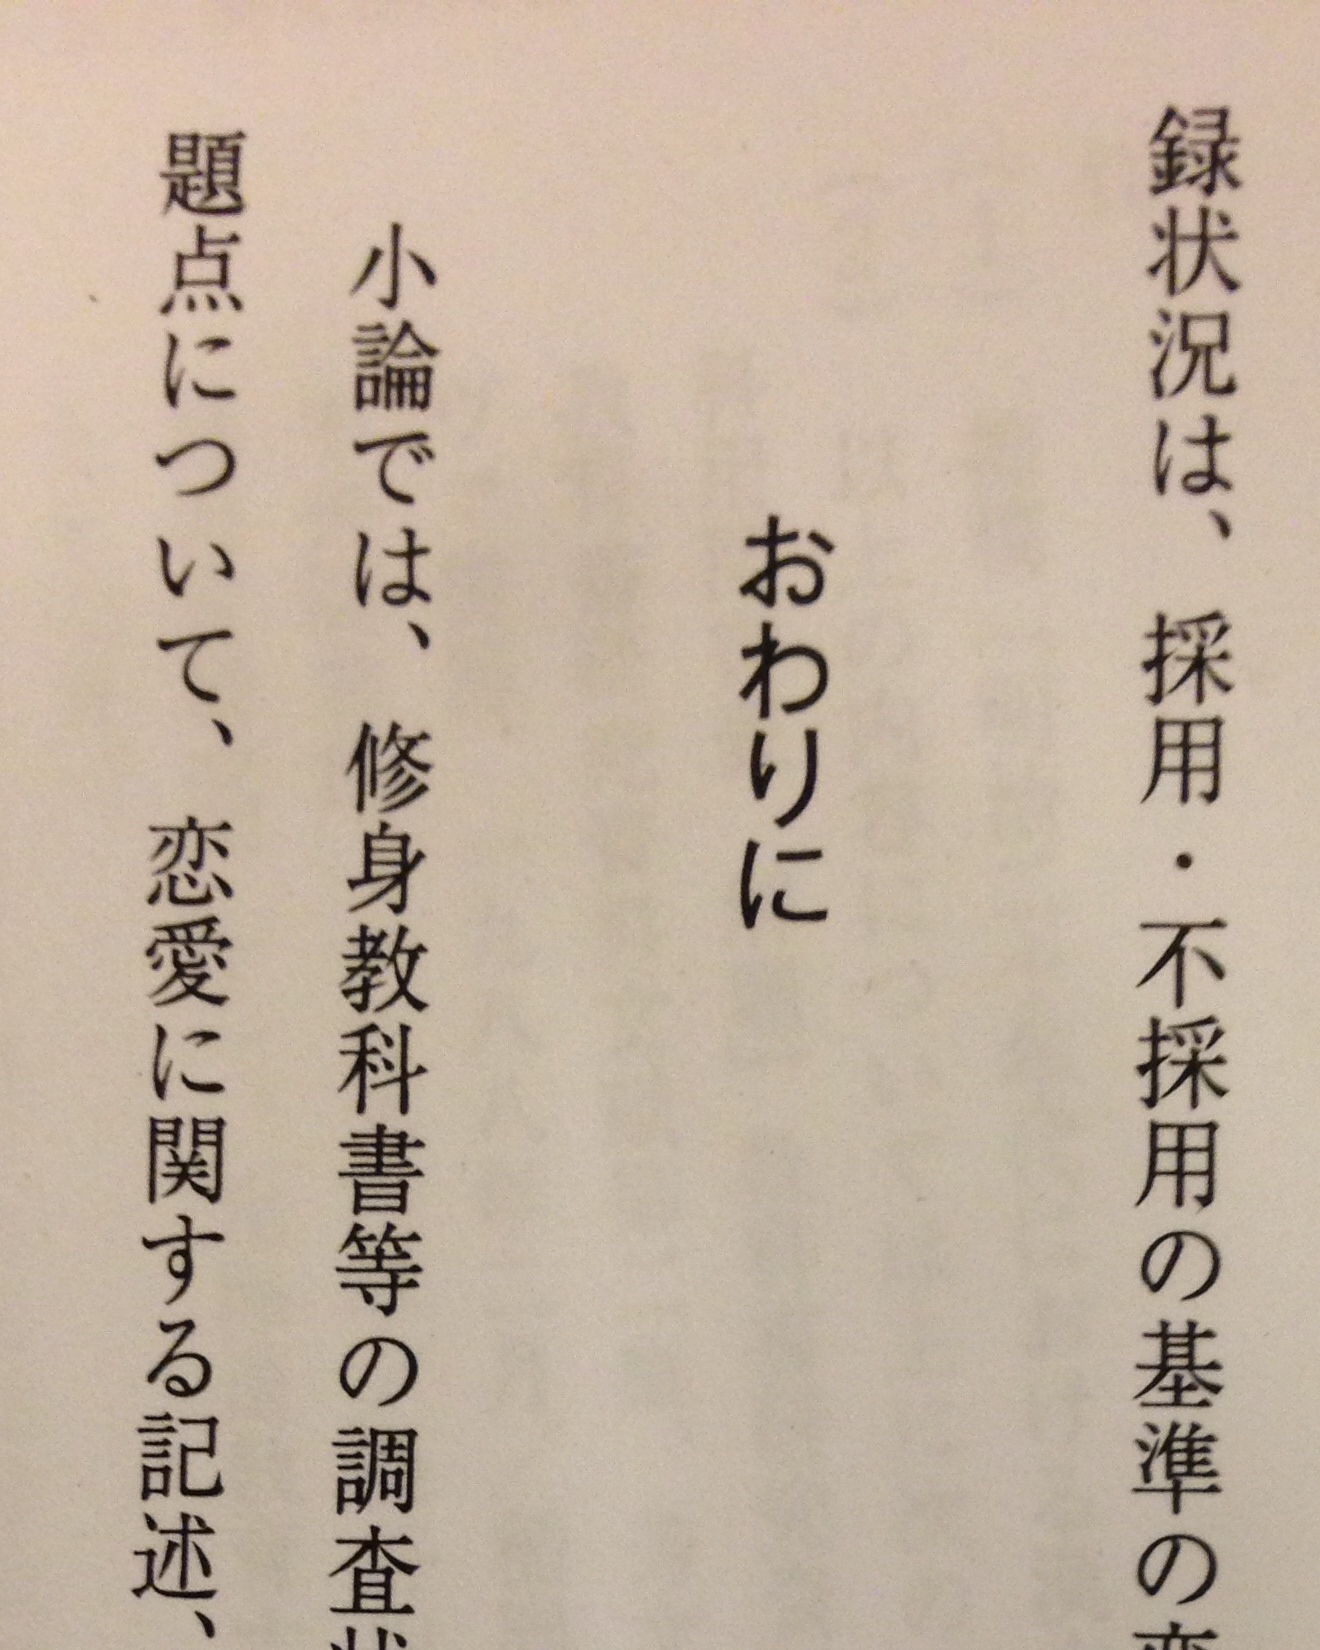 jpy_article_conclusion